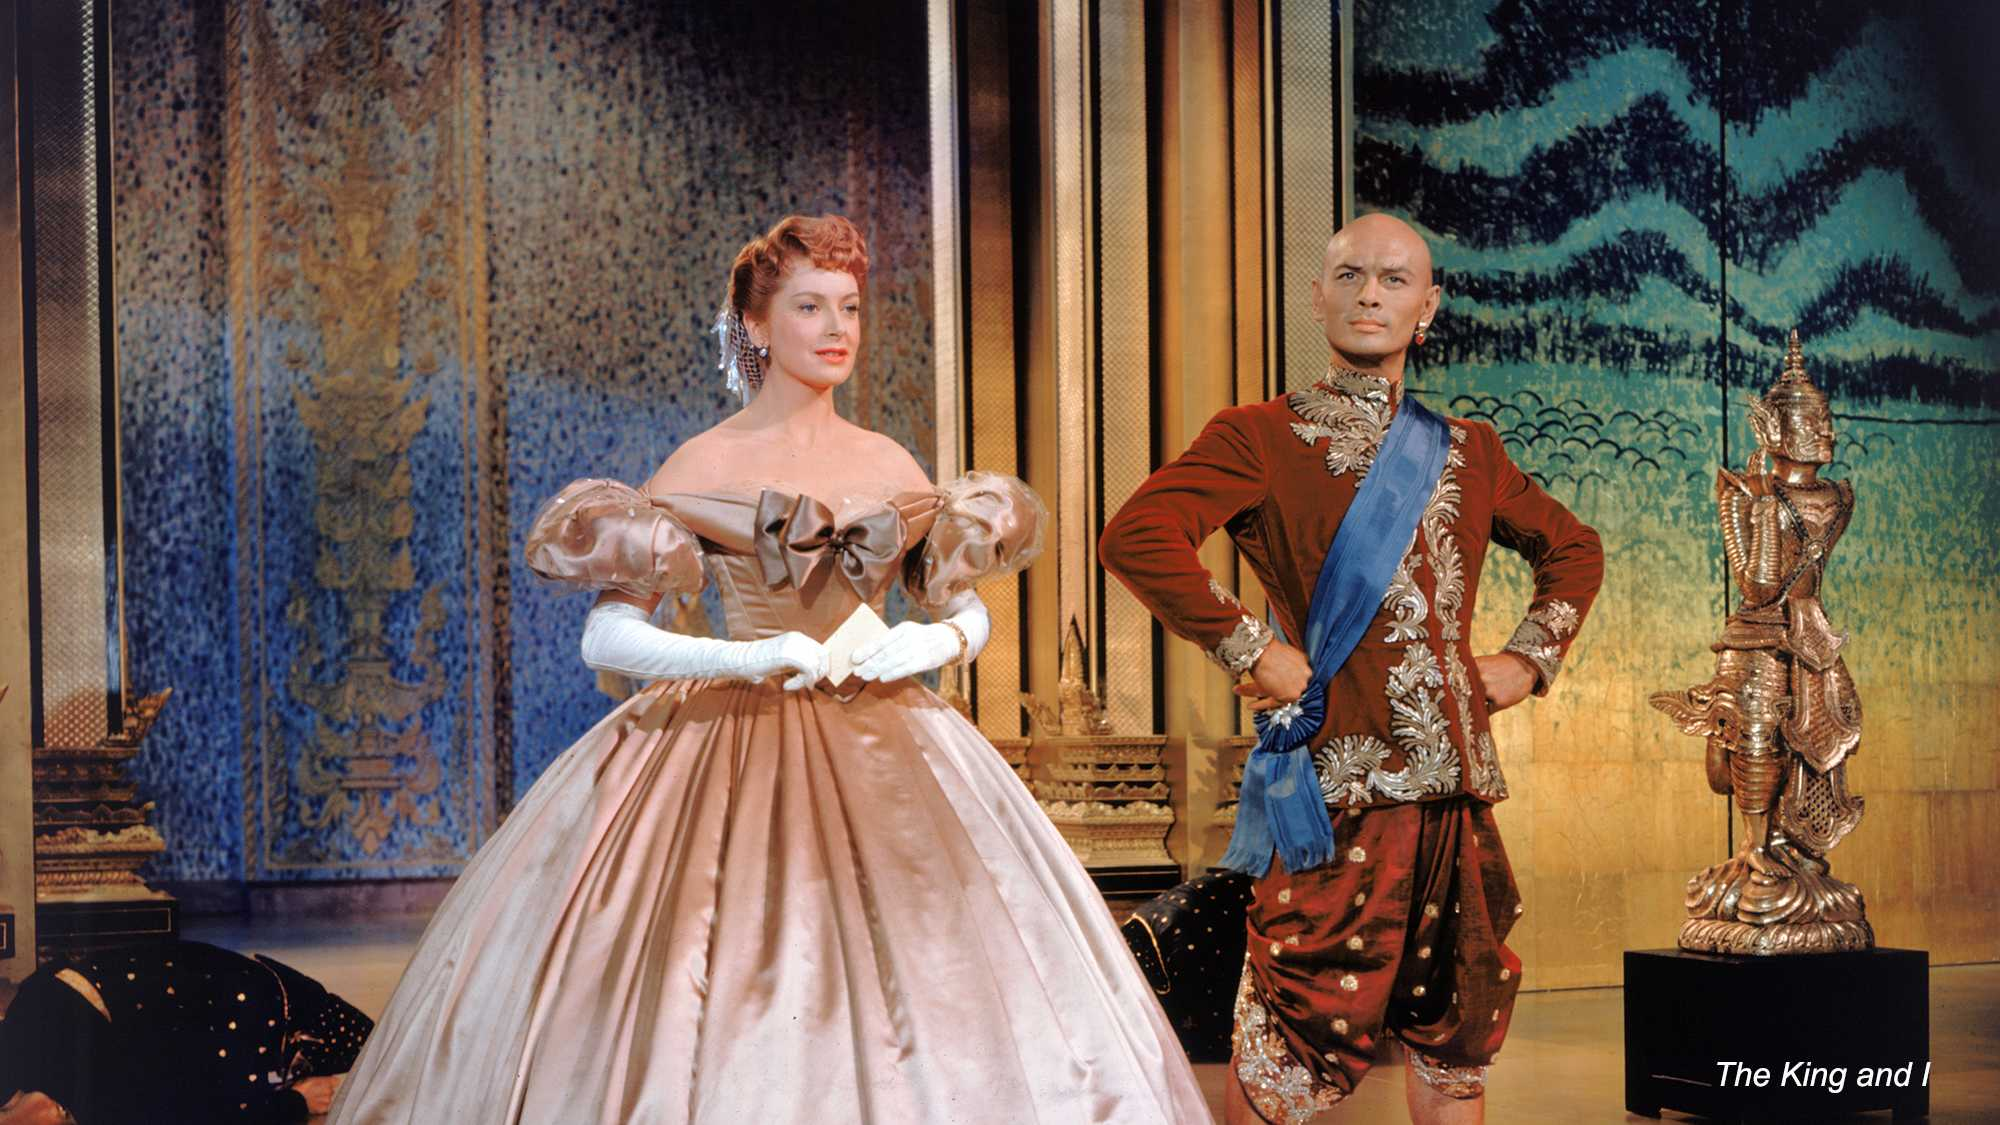 The King and I (image 2)